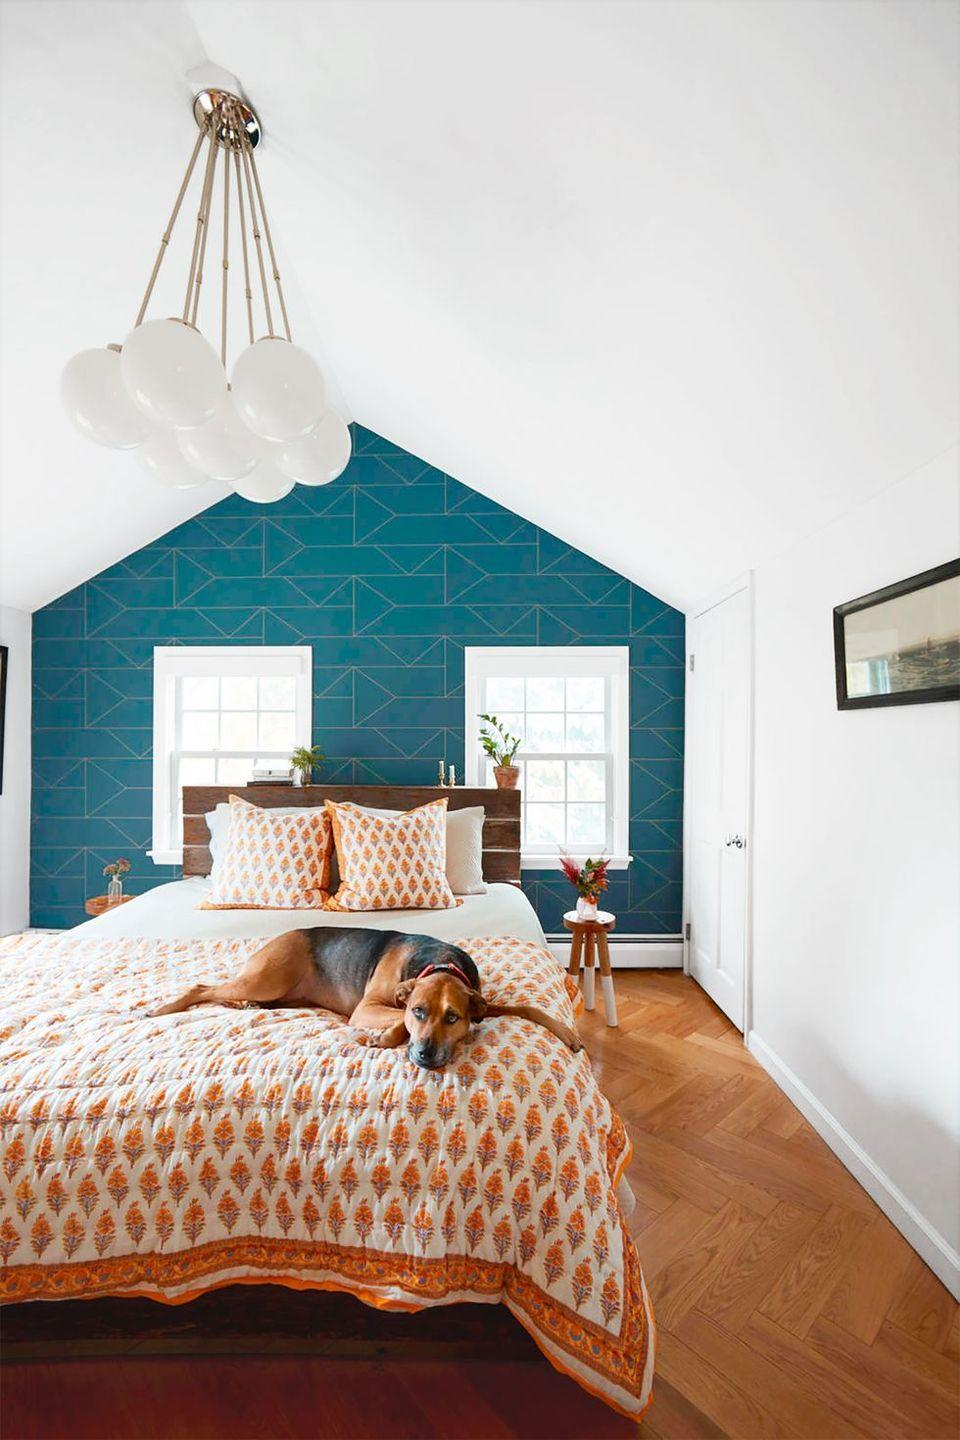 """<p>Rely on graphic wallpaper, such as this teal geometric design, to introduce contrast into a white bedroom. <br></p><p><b>RELATED: </b><a href=""""https://www.goodhousekeeping.com/home/decorating-ideas/g35993483/best-removable-temporary-wallpapers/"""" rel=""""nofollow noopener"""" target=""""_blank"""" data-ylk=""""slk:15 Removable Wallpapers That Will Temporarily Transform Your Space"""" class=""""link rapid-noclick-resp"""">15 Removable Wallpapers That Will Temporarily Transform Your Space</a></p>"""